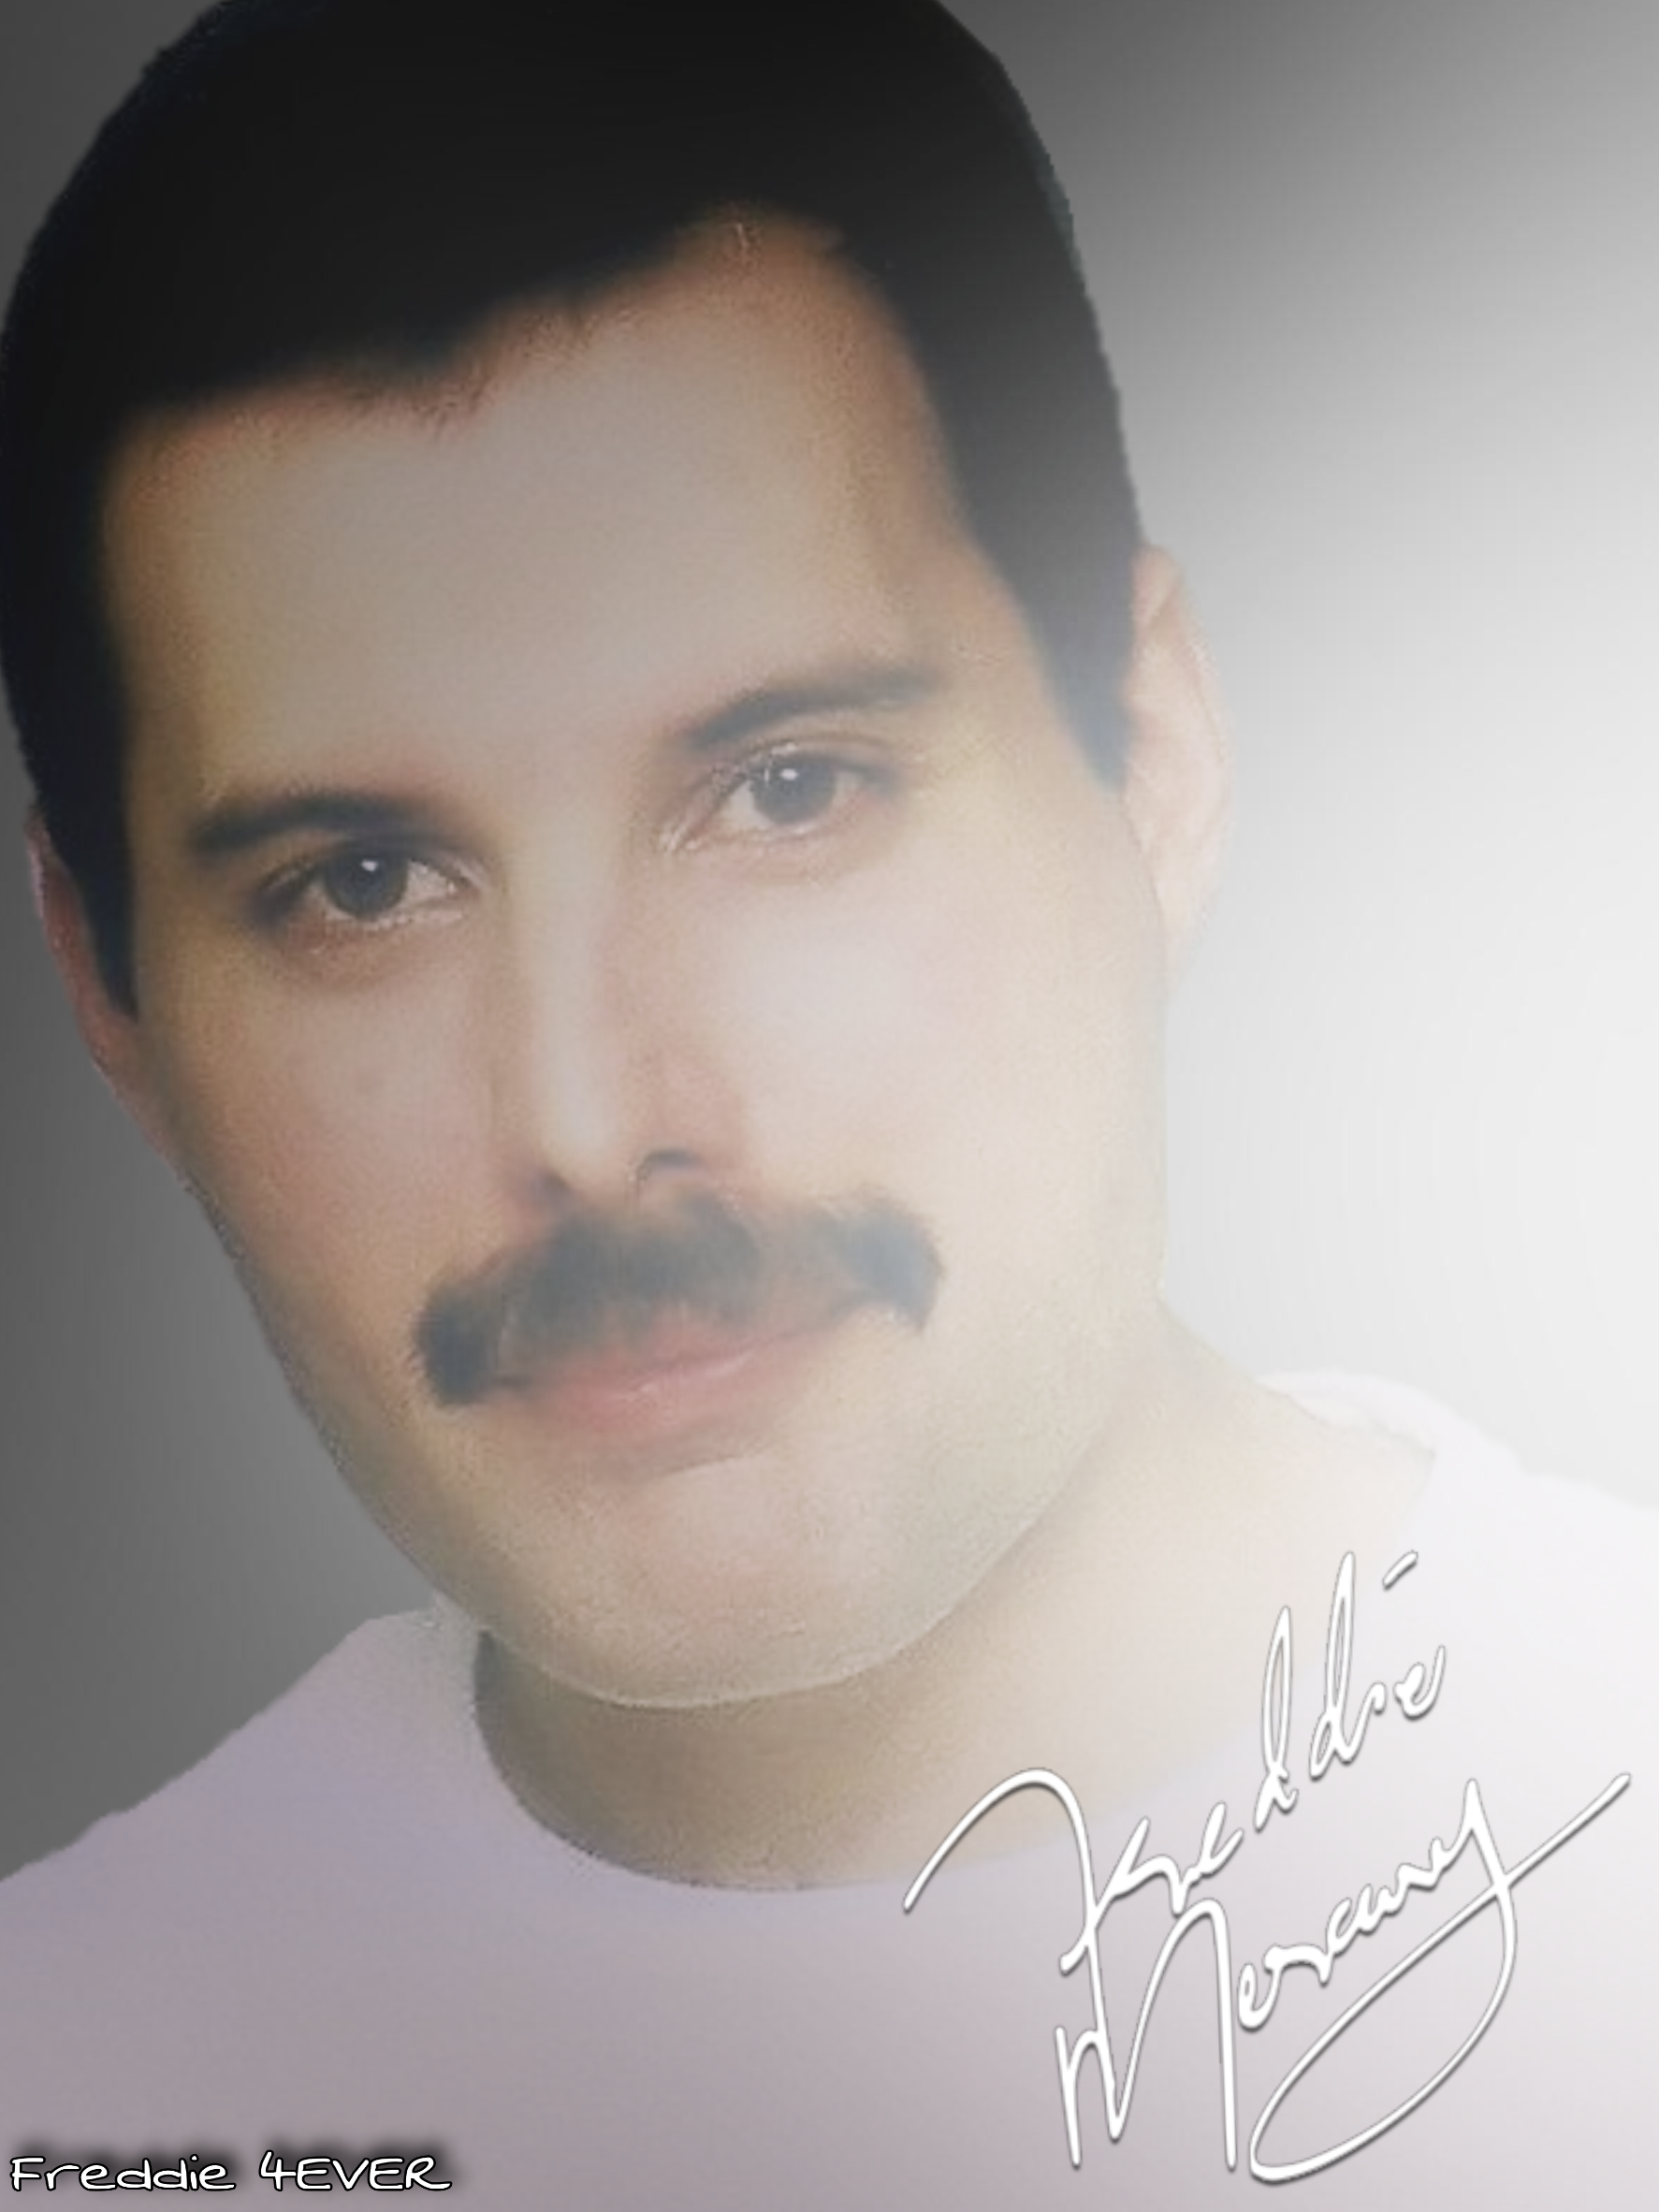 Pin By Judy Dohany On Queen Somebody To Love Freddie Mercury Greatest Rock Bands